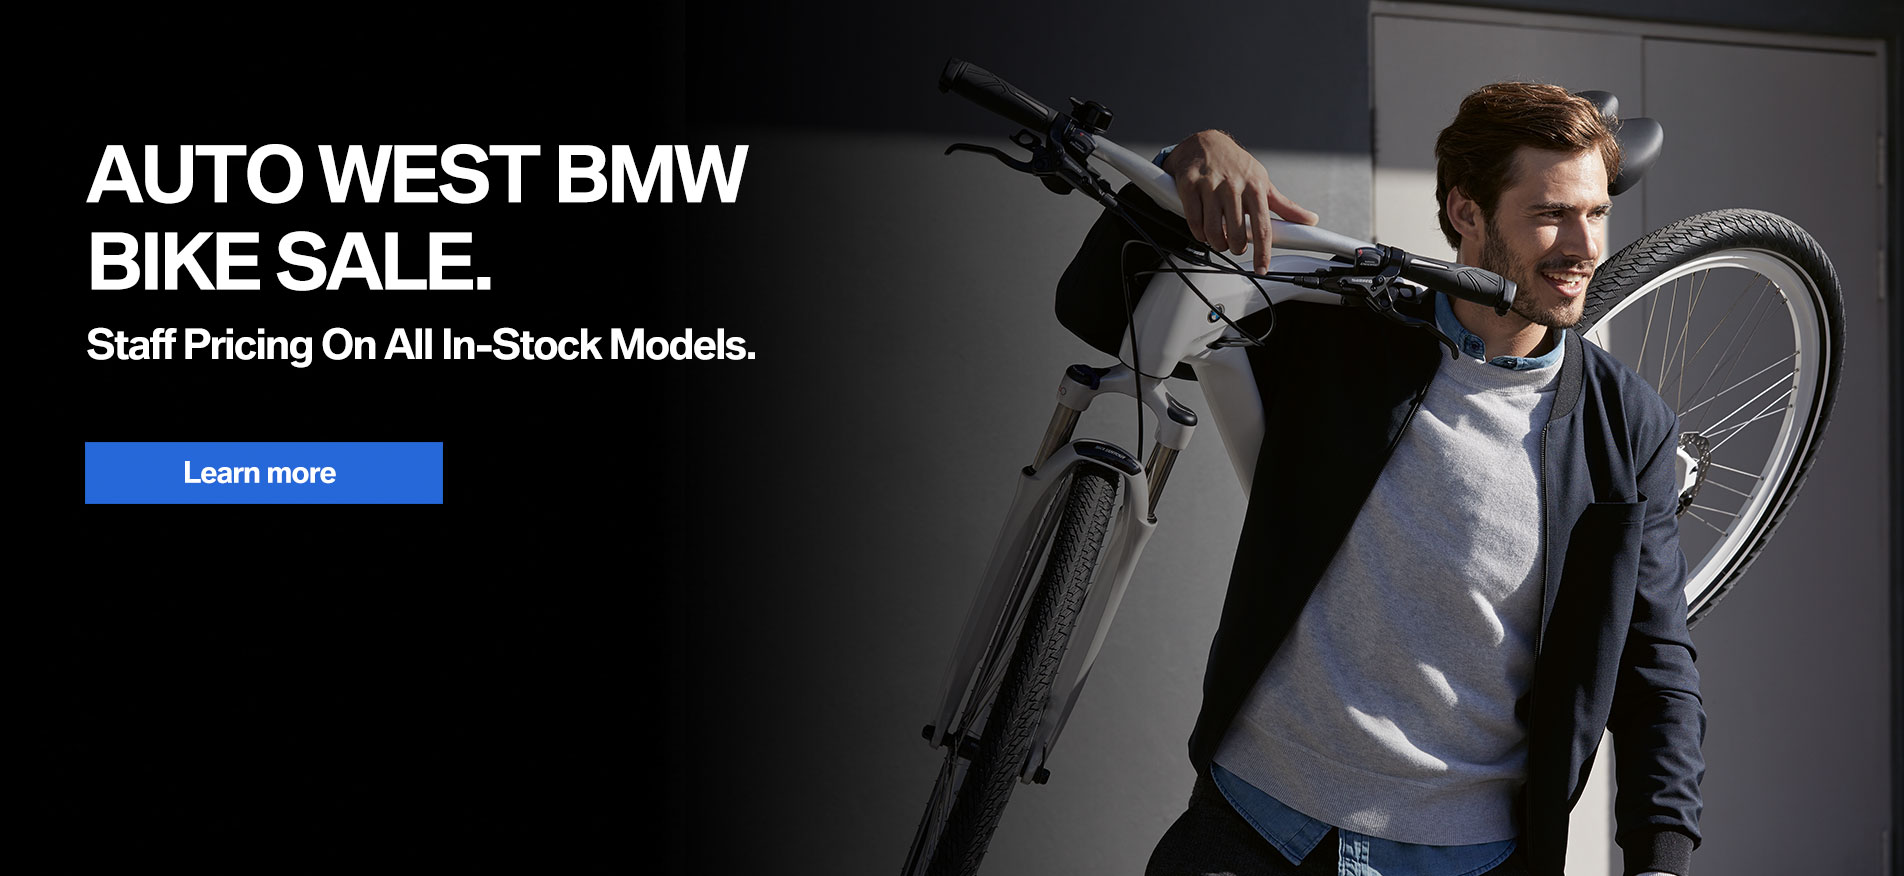 BMW Bike Sale May 2019